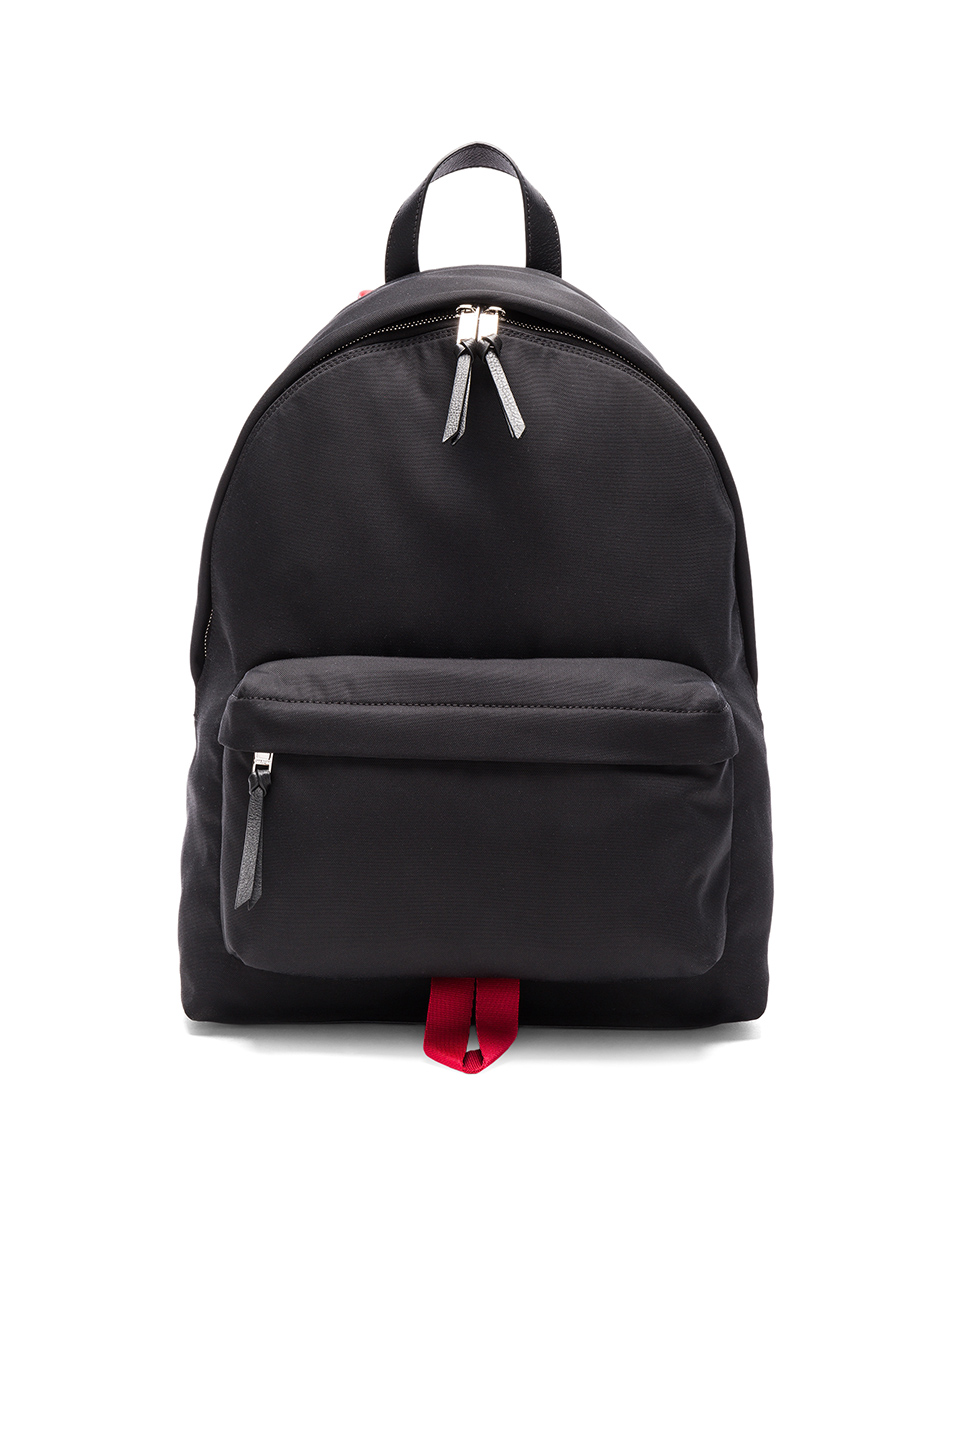 Givenchy Backpack in Black